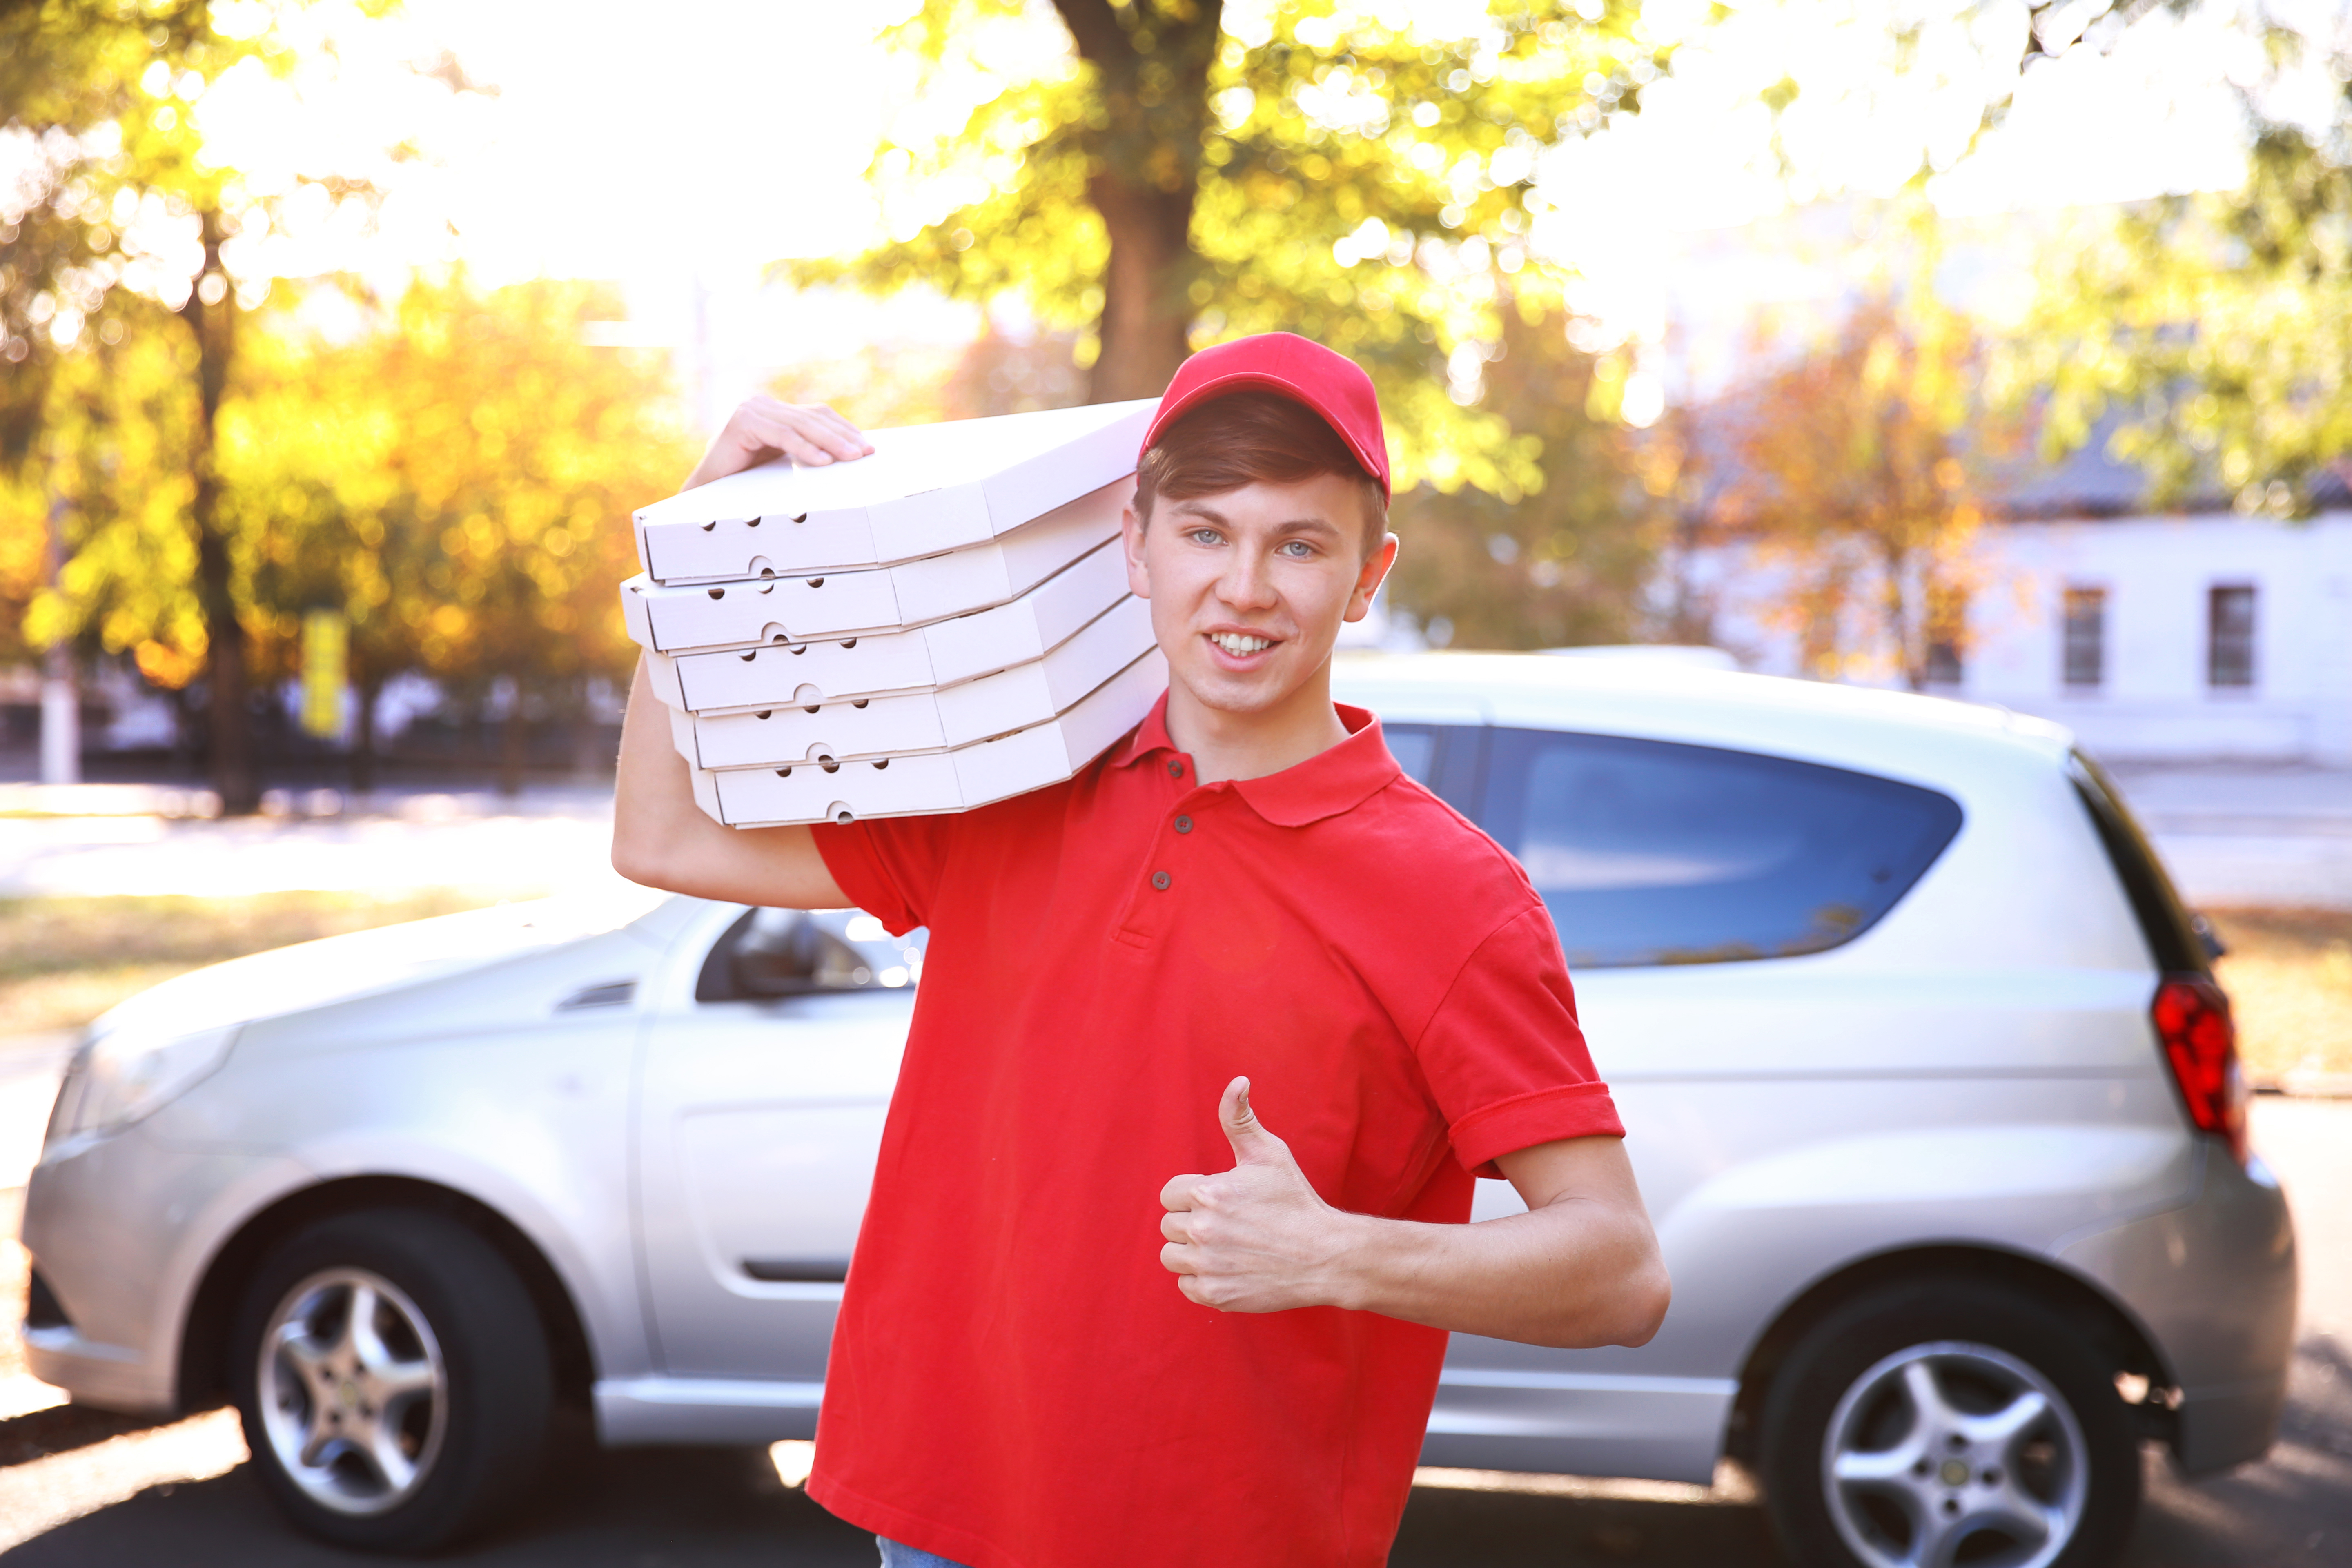 Pizza Delivery in Pembroke Pines, Miramar, Hollywood, FL, Weston, Cooper City